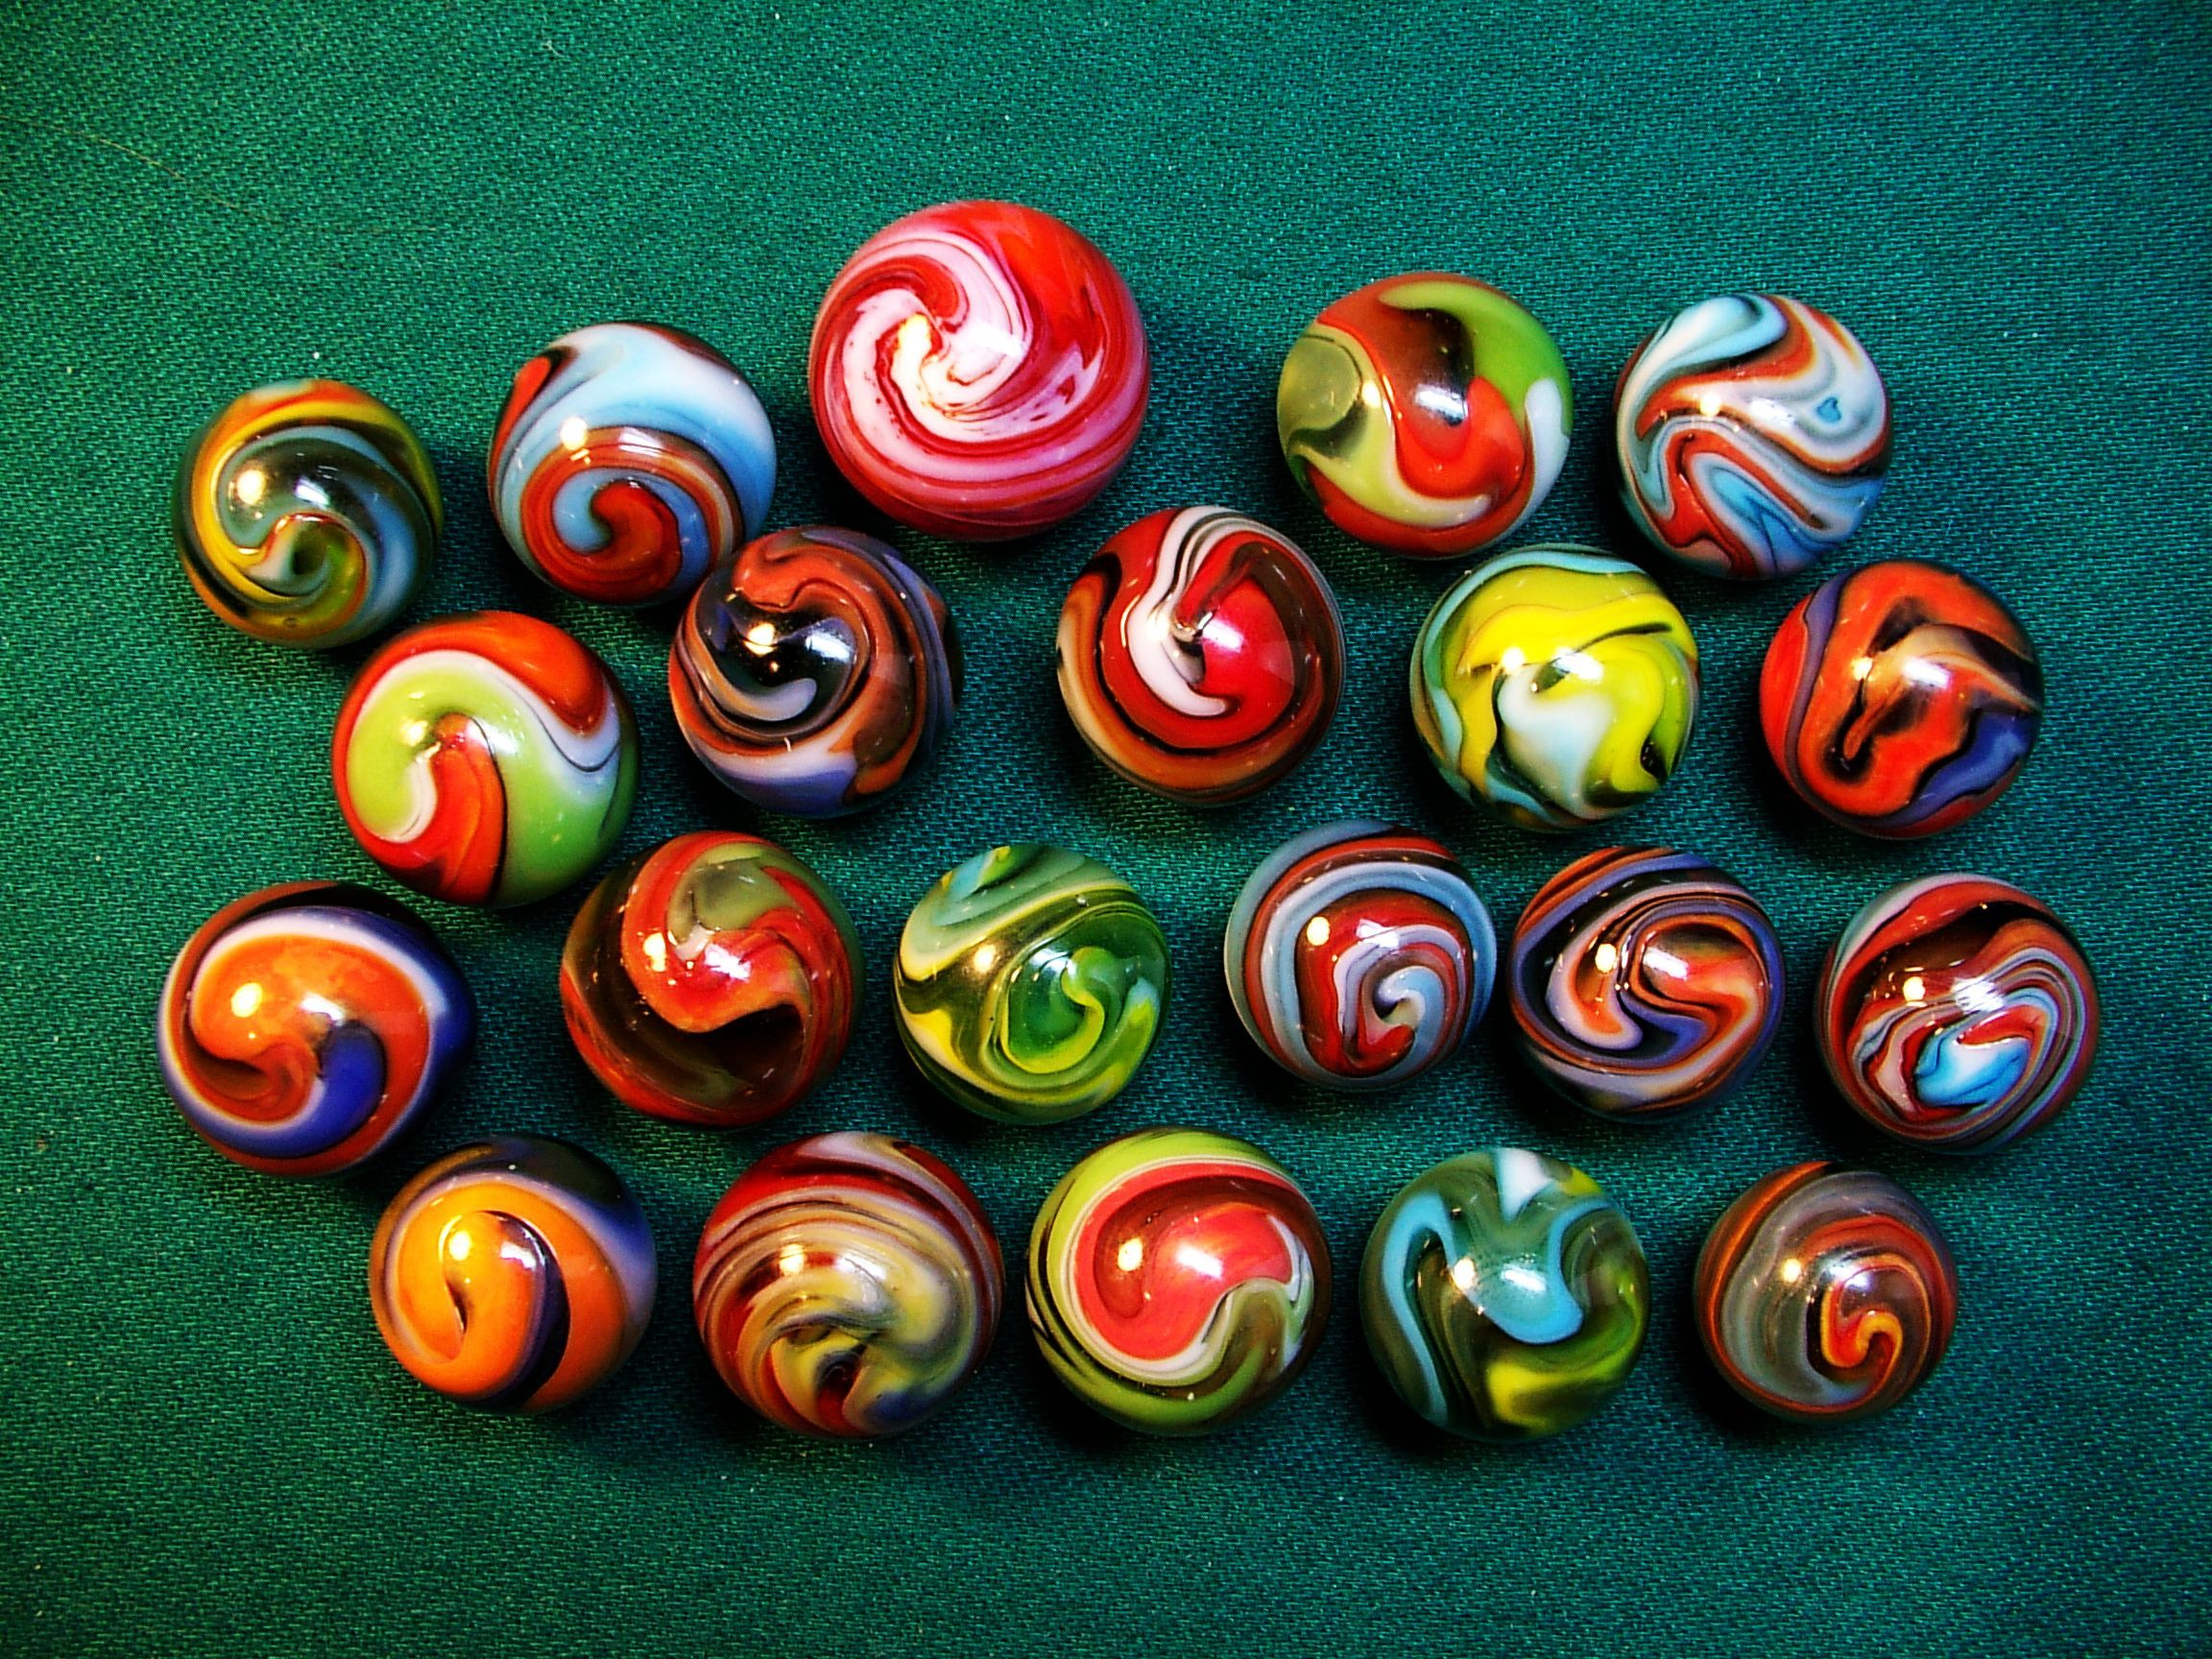 Collectiblemarbles Com Specializing In Vintage Antique